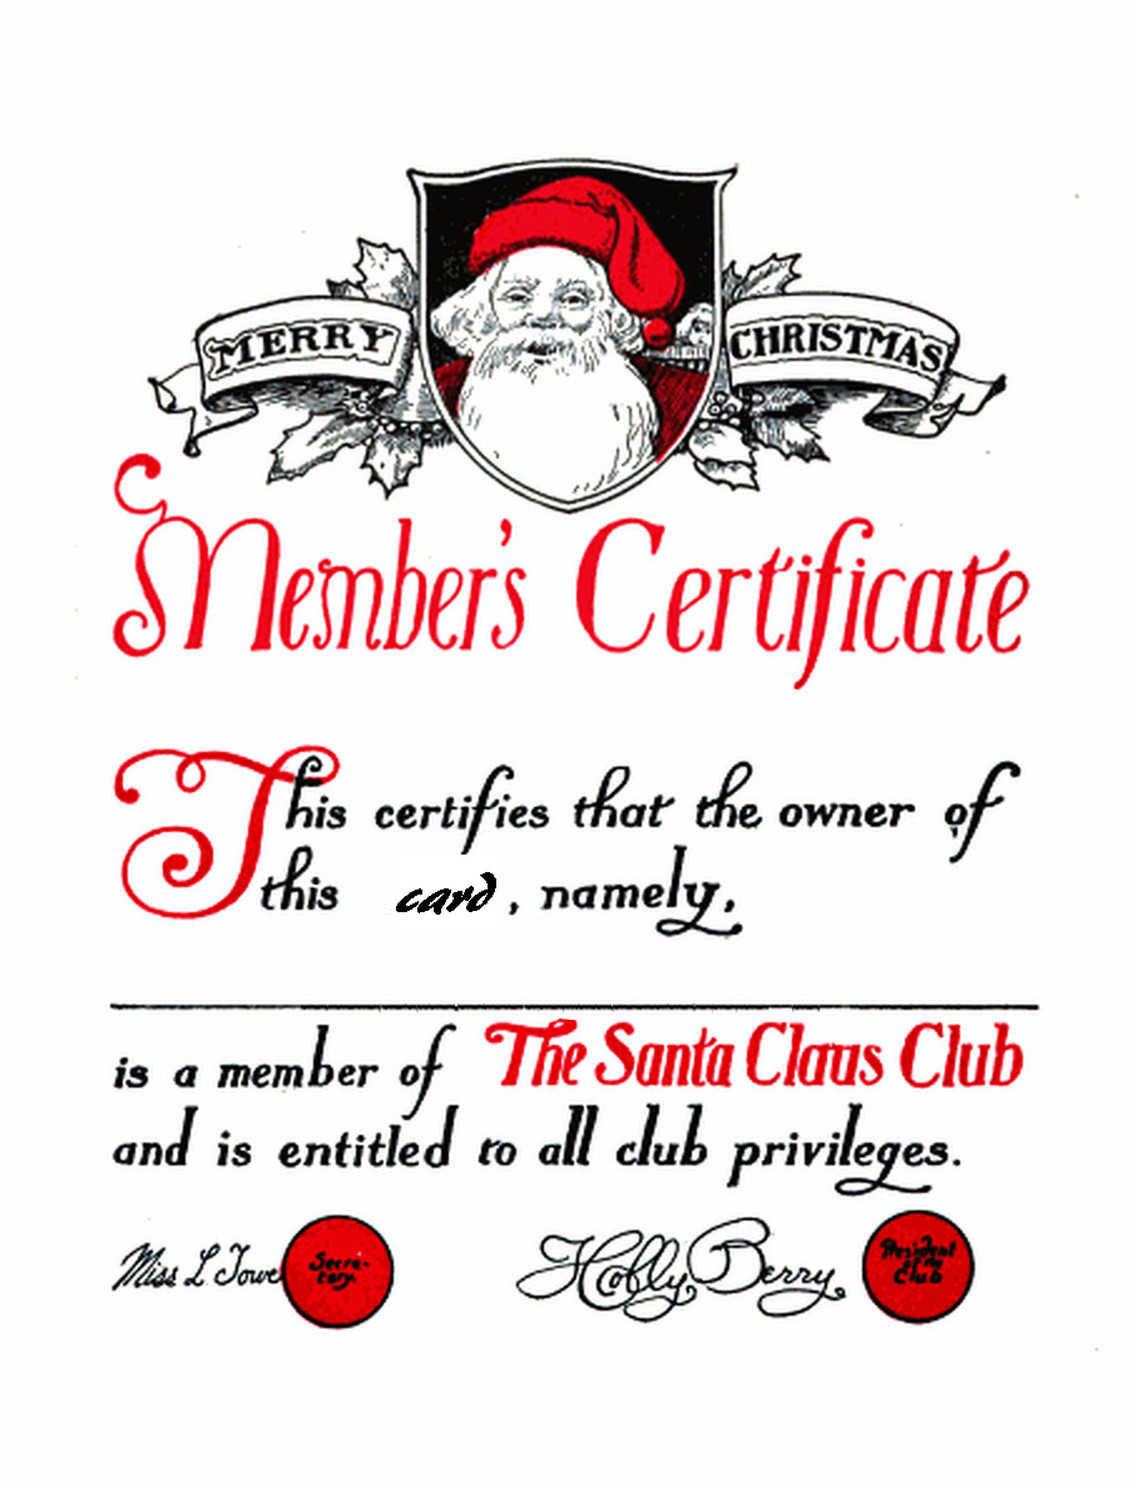 Join the Santa Claus Club